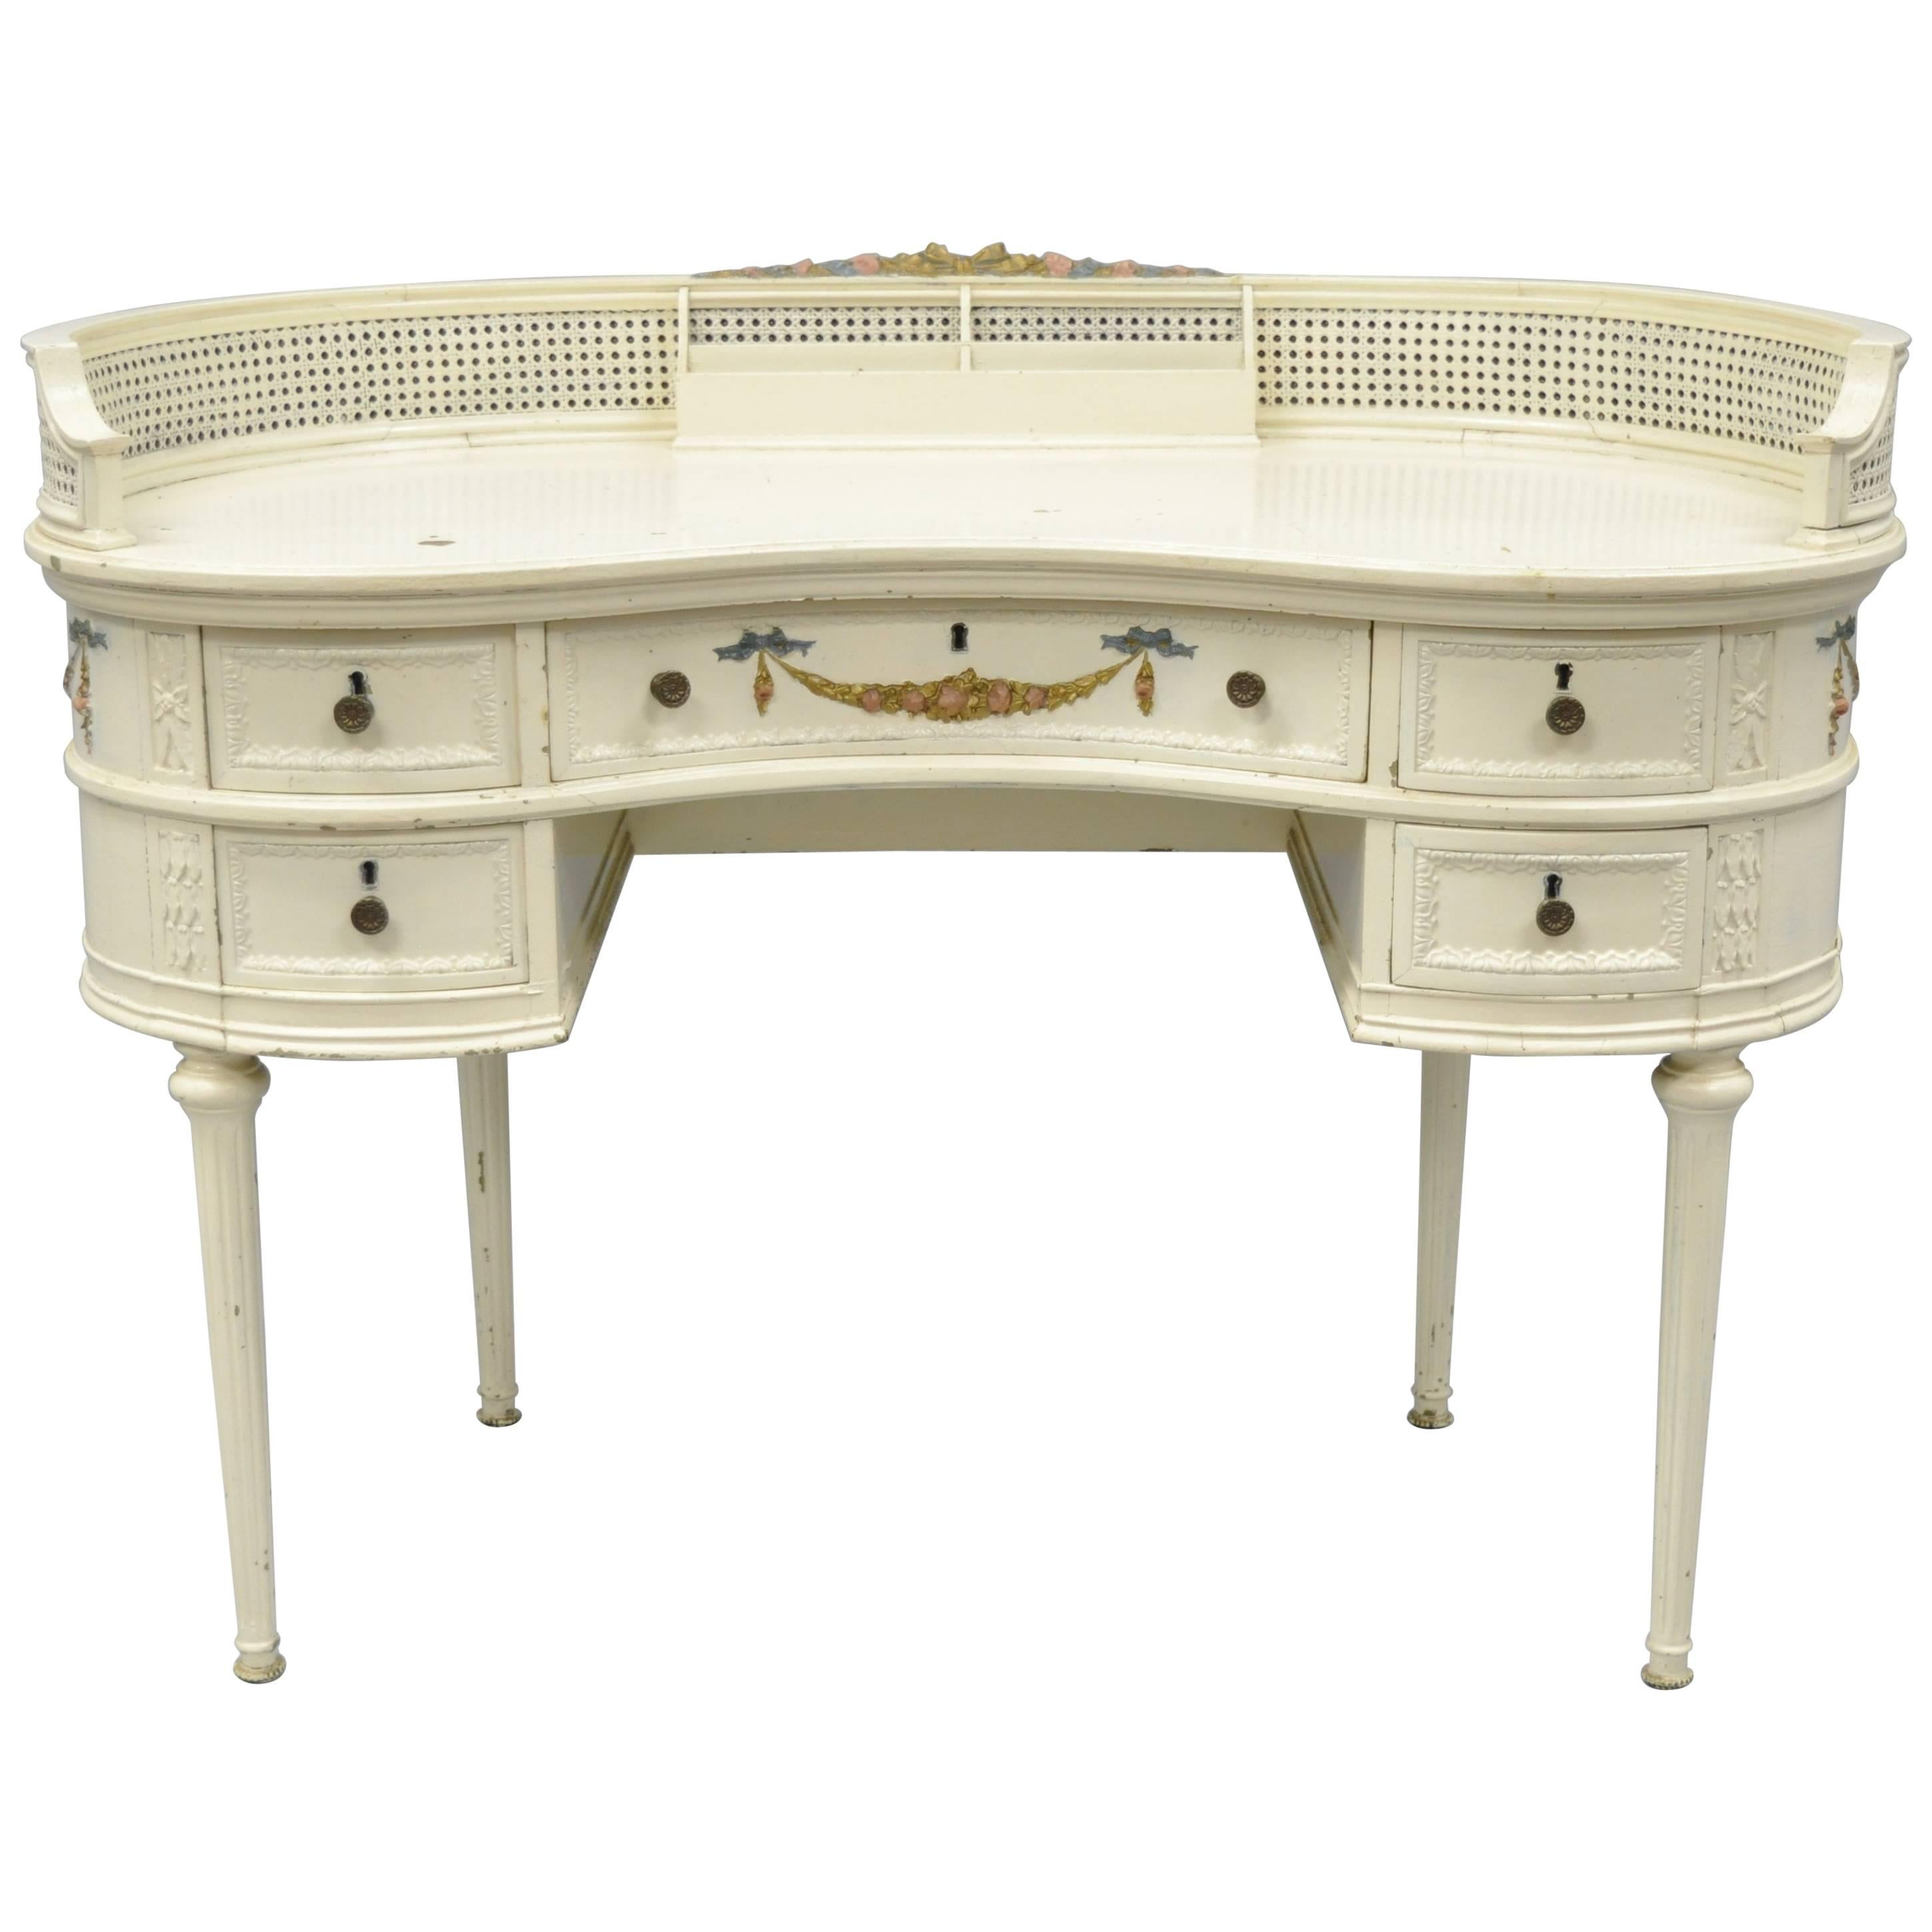 Antique French Louis XVI Style Kidney Shaped Writing Desk Painted Vanity  Table For Sale